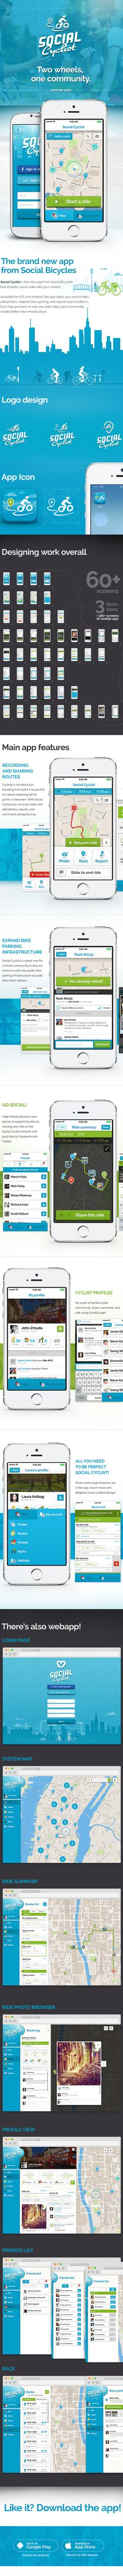 Social Cyclist - Mobile App - for Bicycle enthusiasts by John Zmuda, via Behance